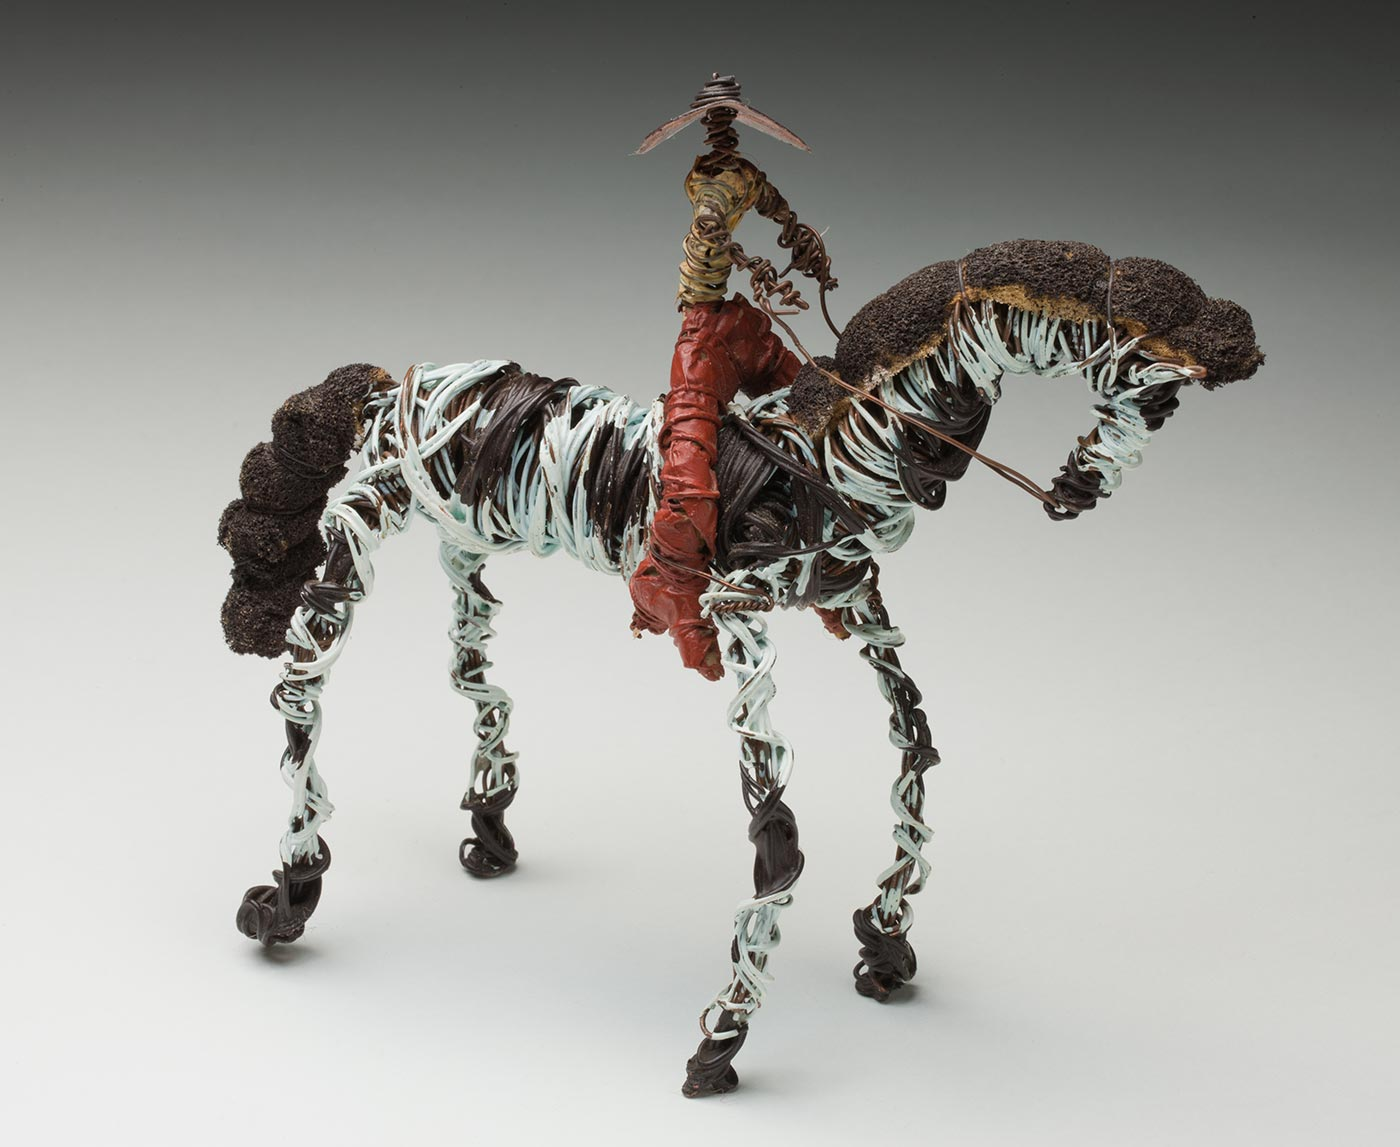 Bush toy consisting of a figure on a black and white horse made from painted coiled wire and fabric. - click to view larger image